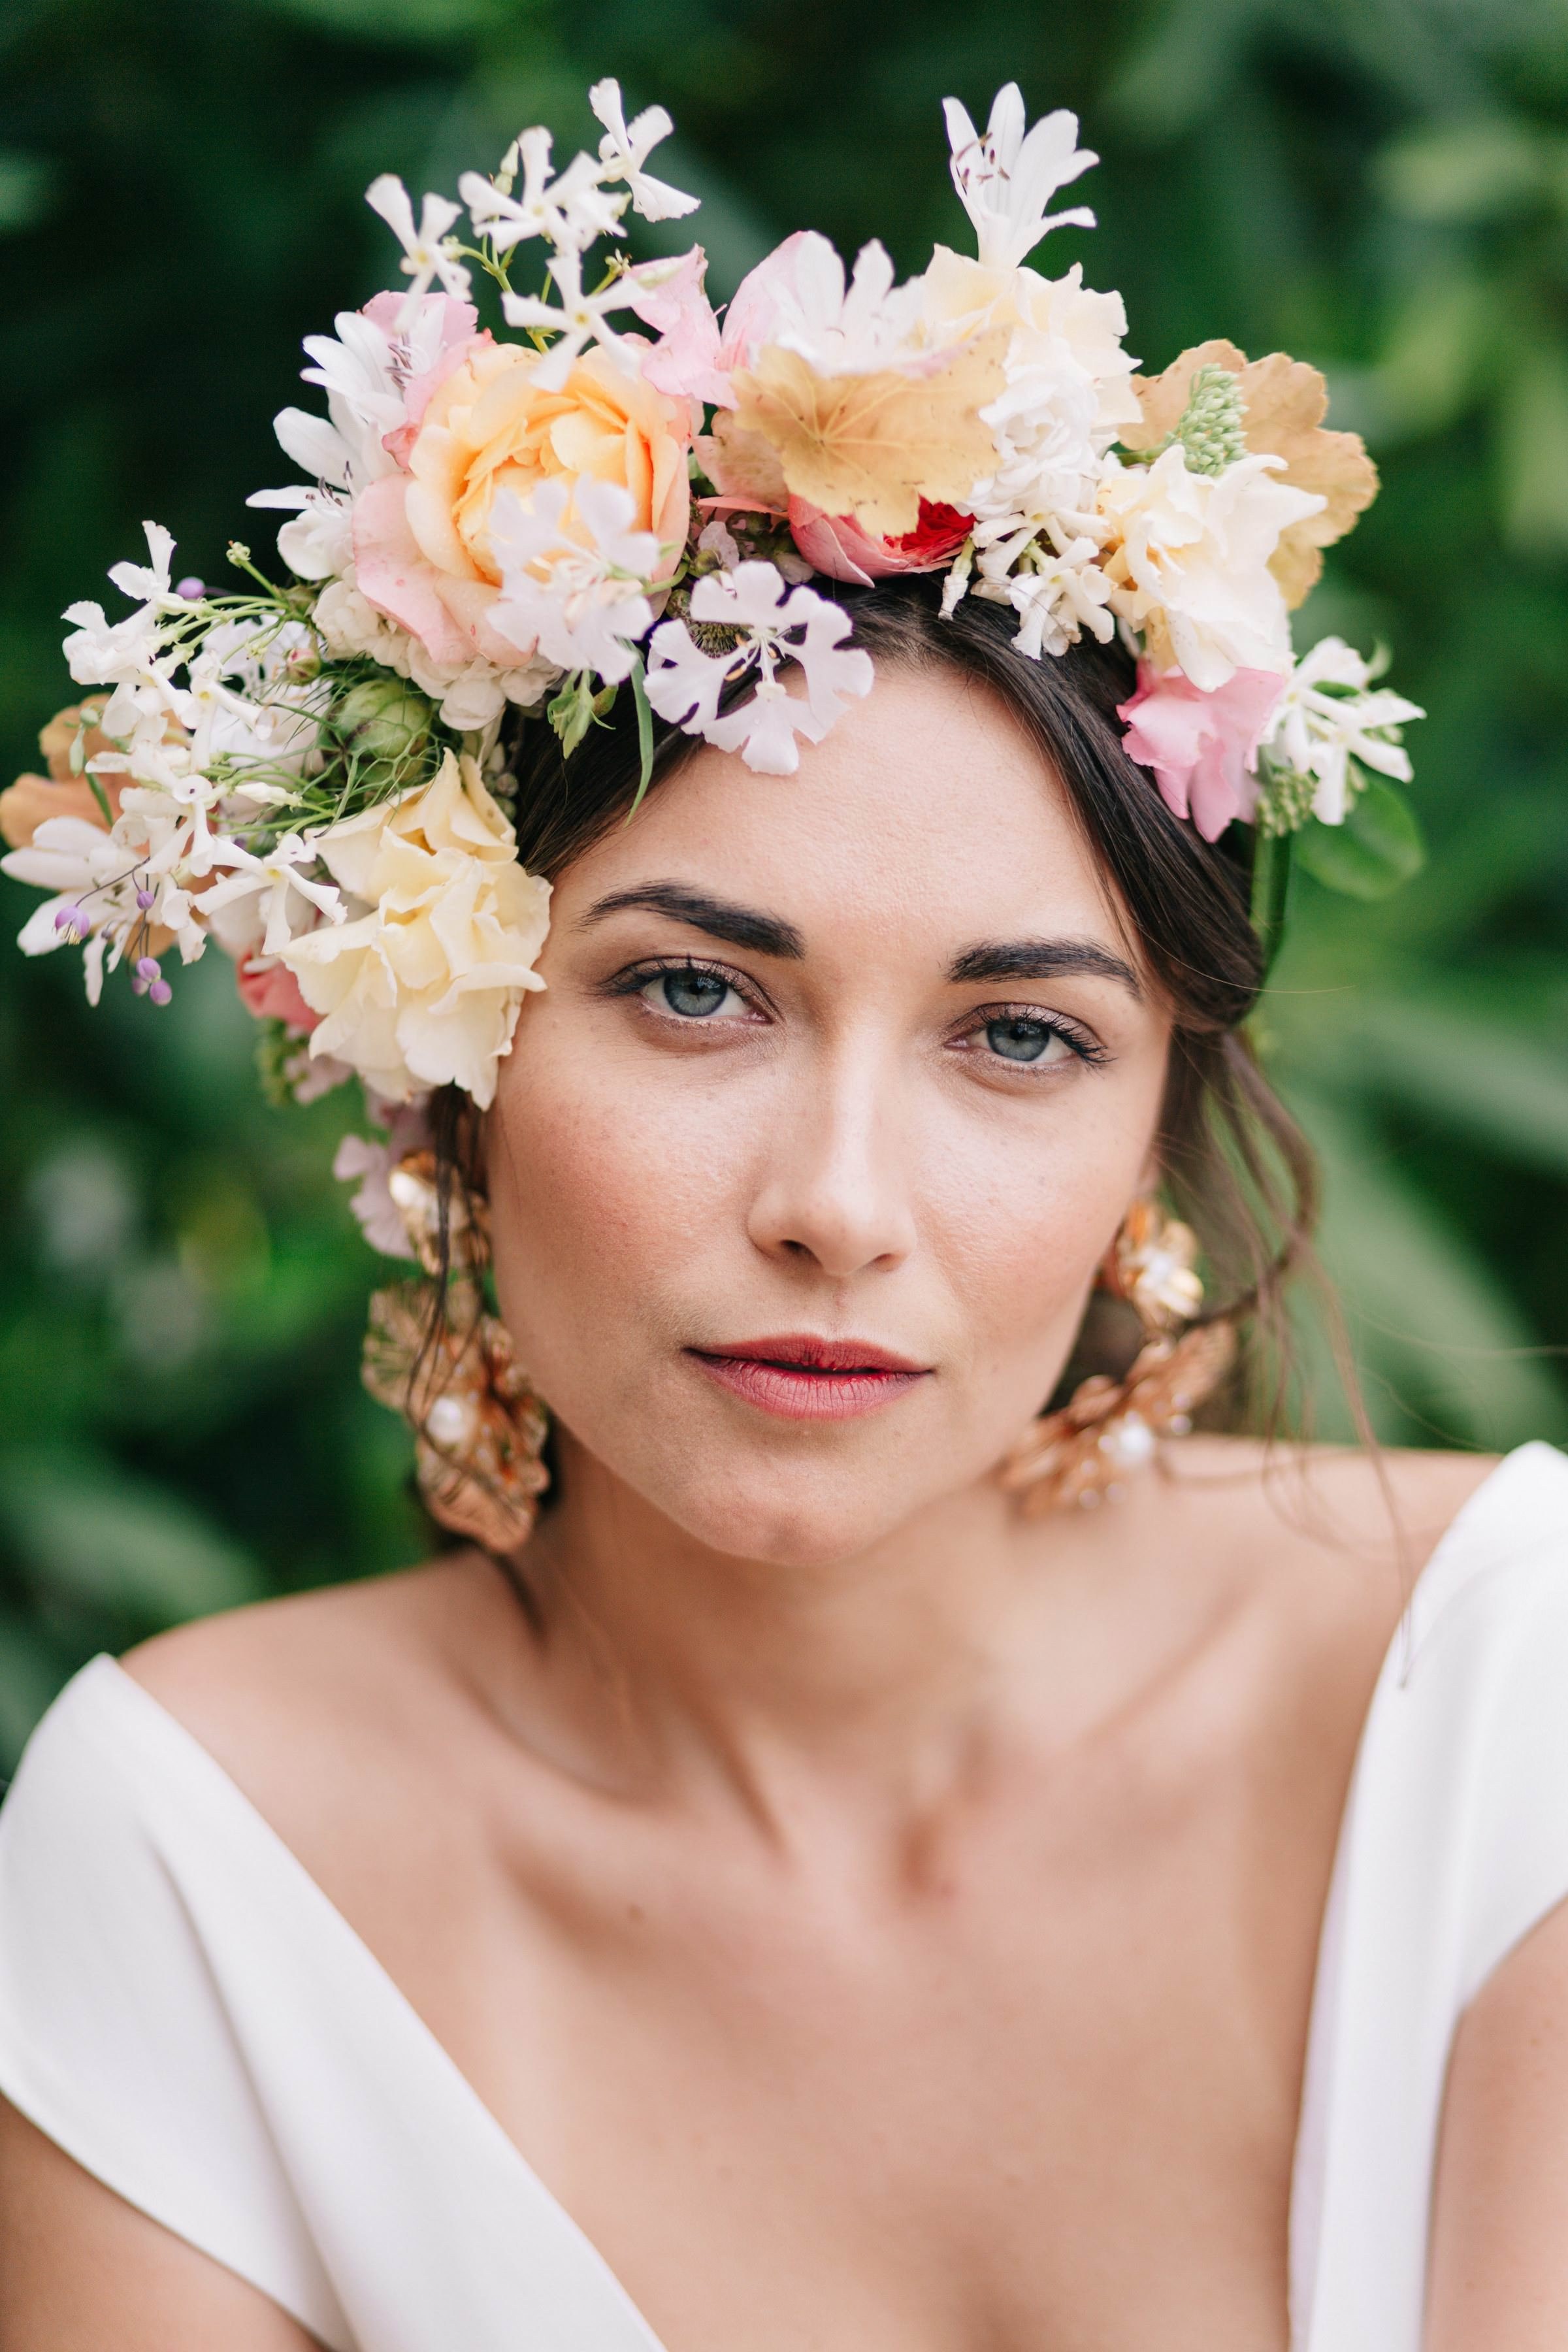 bride with floral headpiece- photo by Amandine Ropars, france